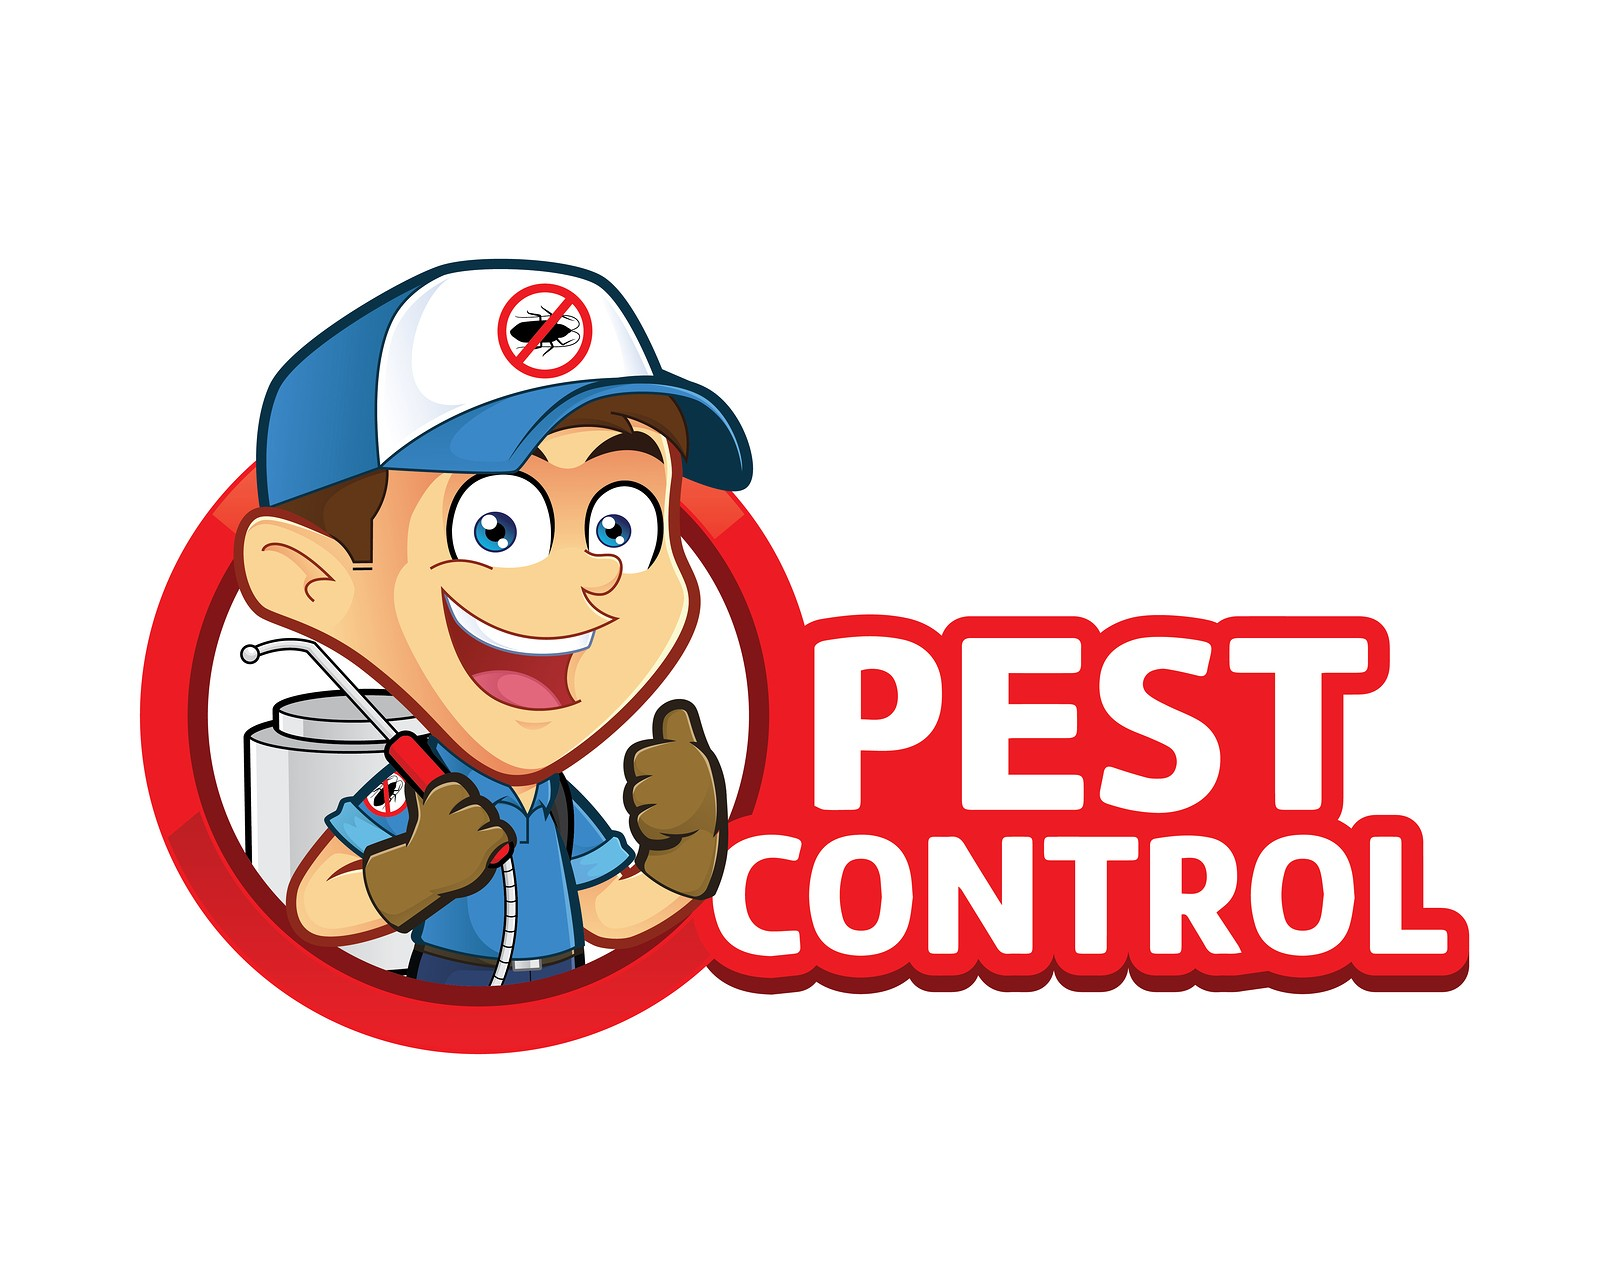 Clipart picture of an exterminator or pest control cartoon character with logo